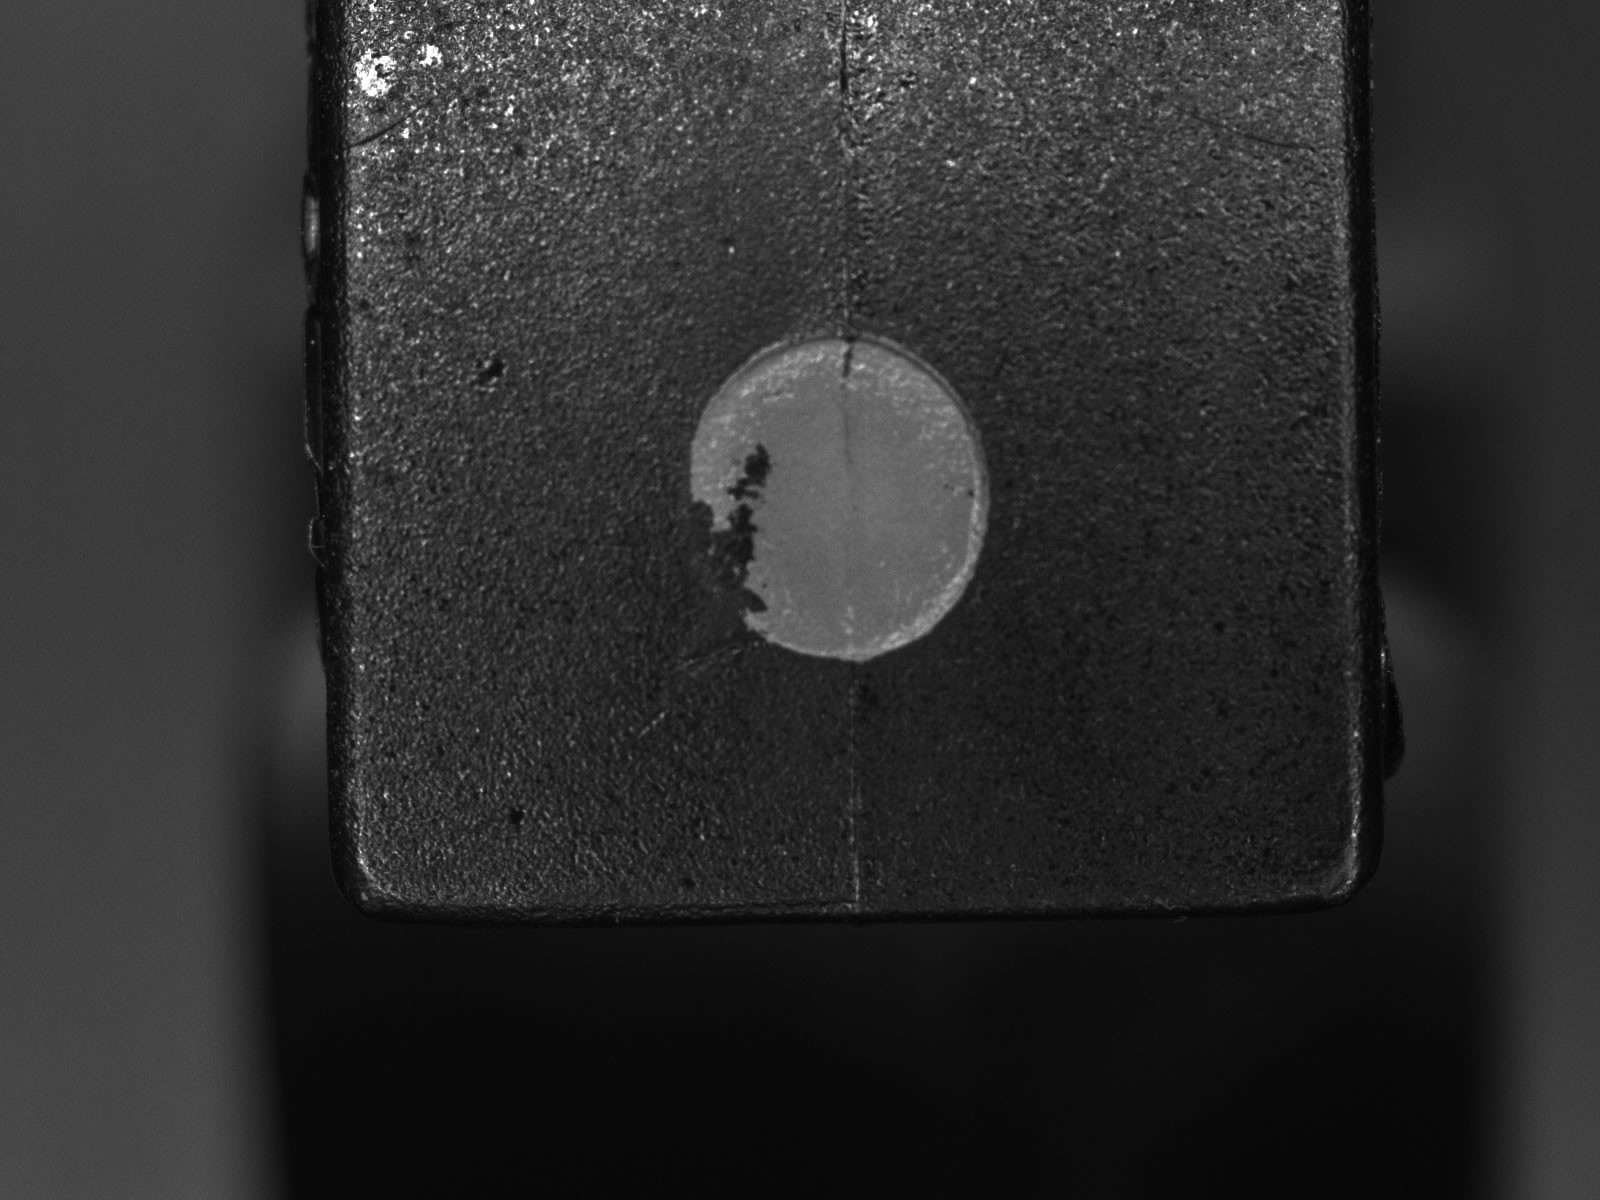 An incomplete good part marking – a passed part that the stamp station failed to completely mark.